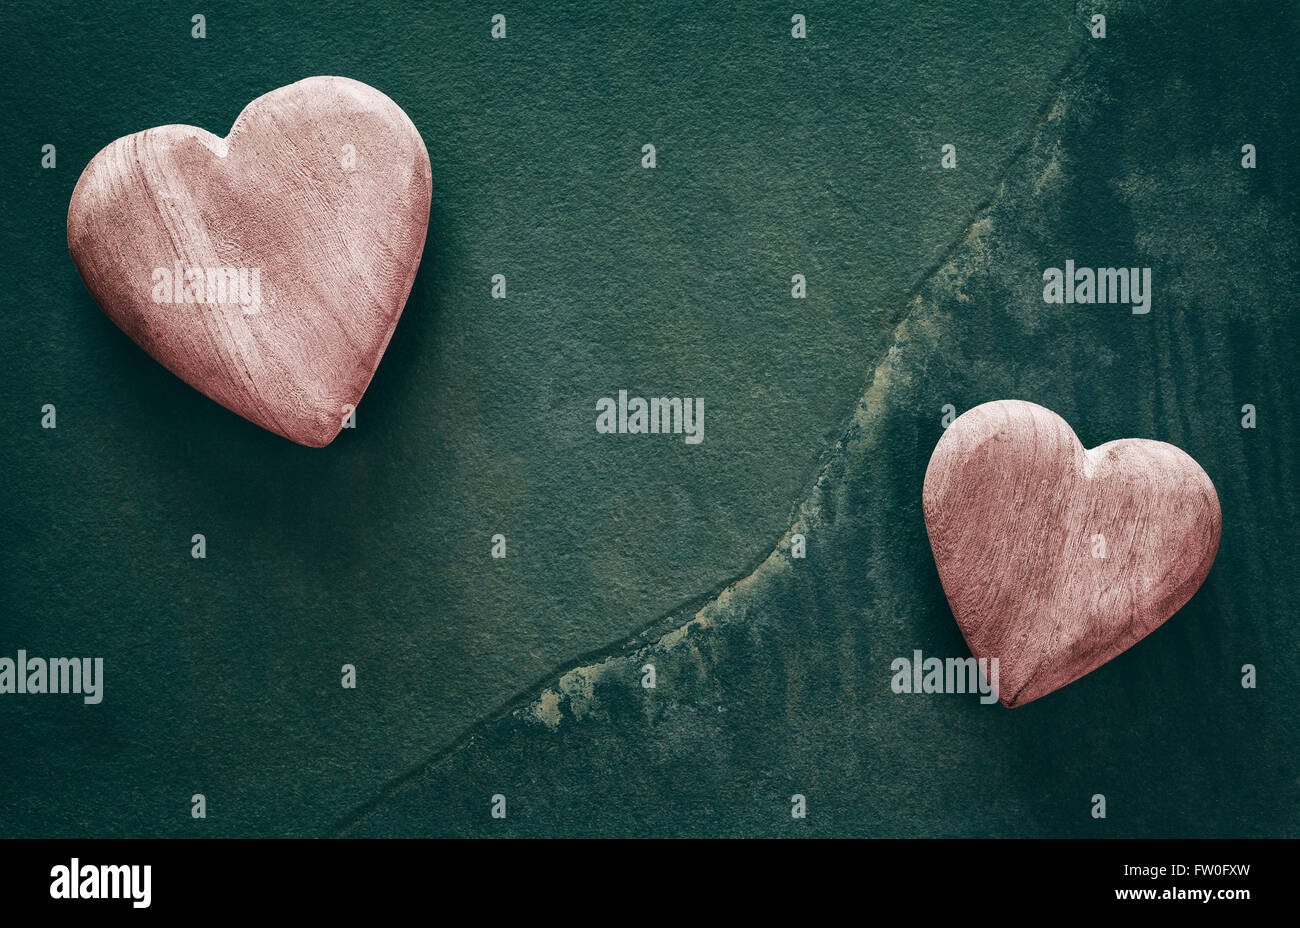 Retro stylized two wooden hearts on cracked stone background, copy space. - Stock Image